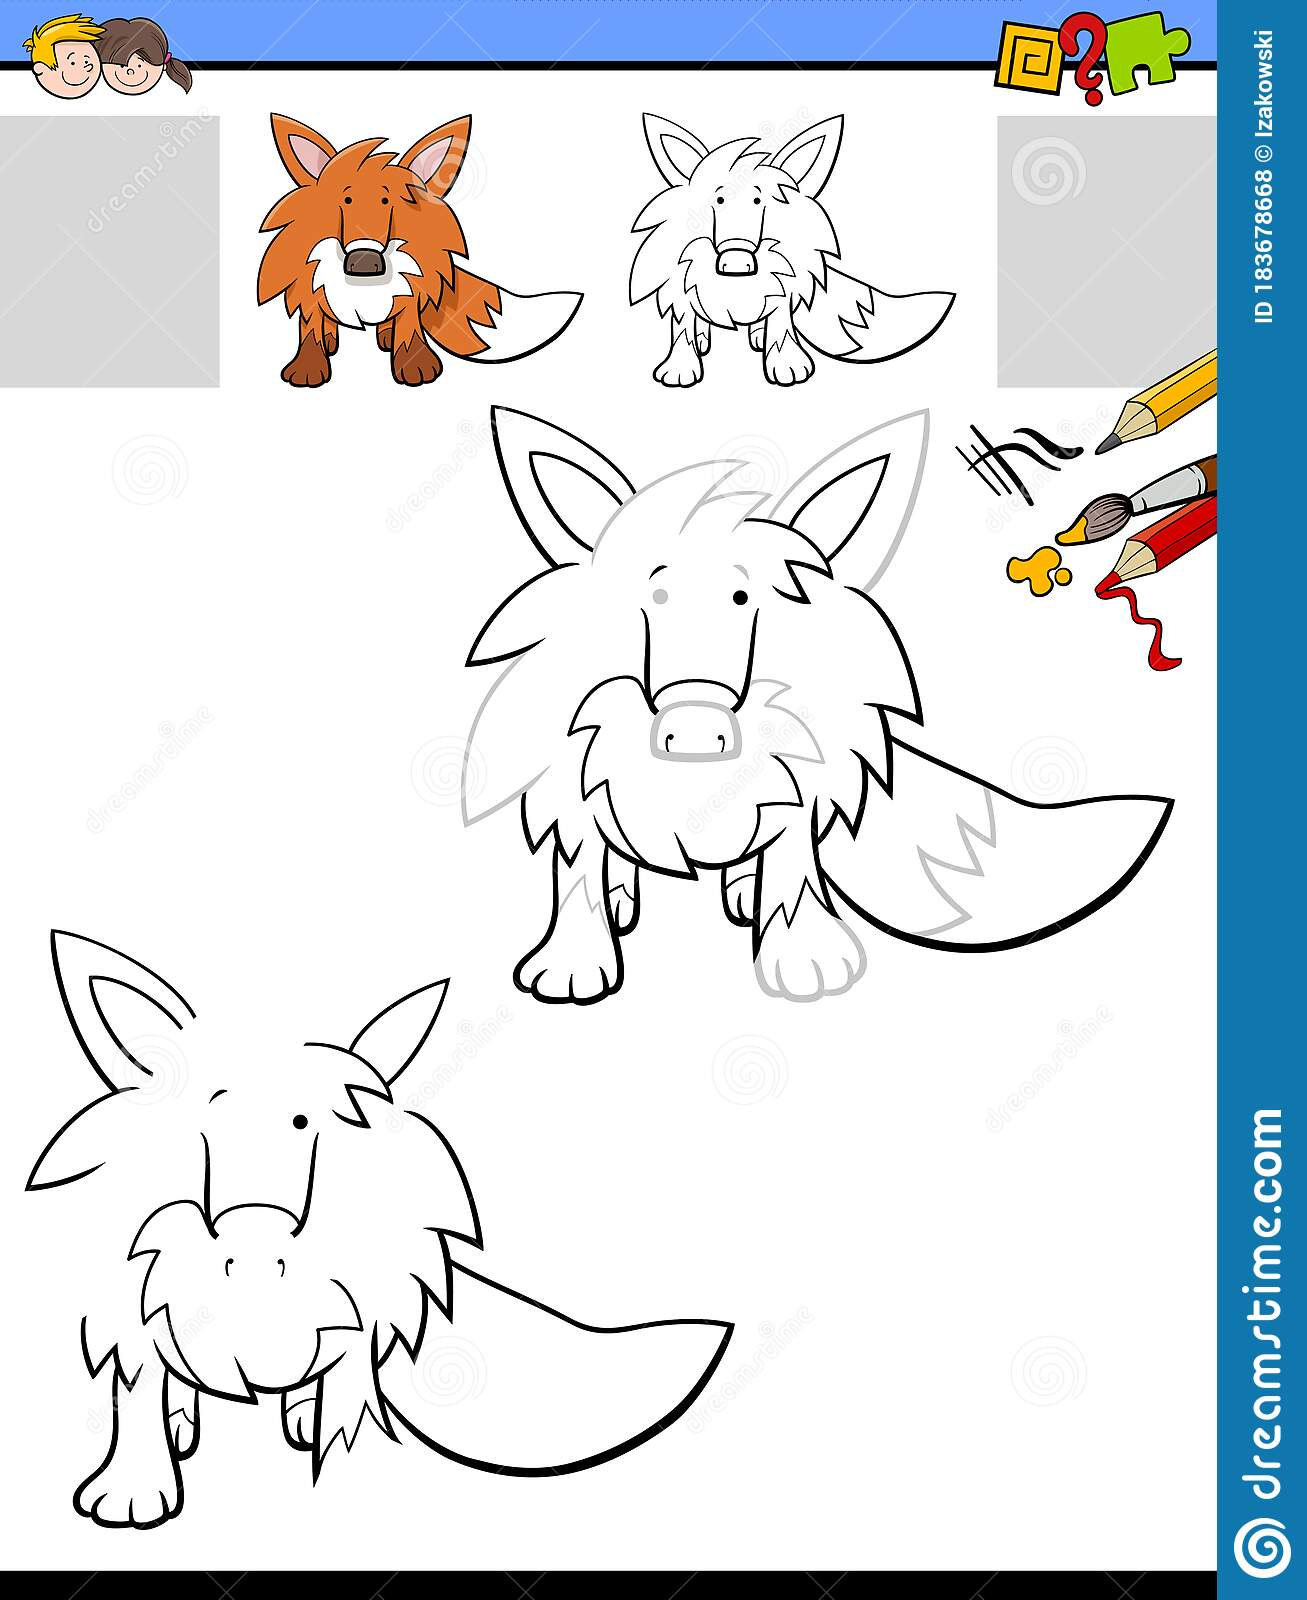 Drawing And Coloring Worksheet With Fox Animal Stock